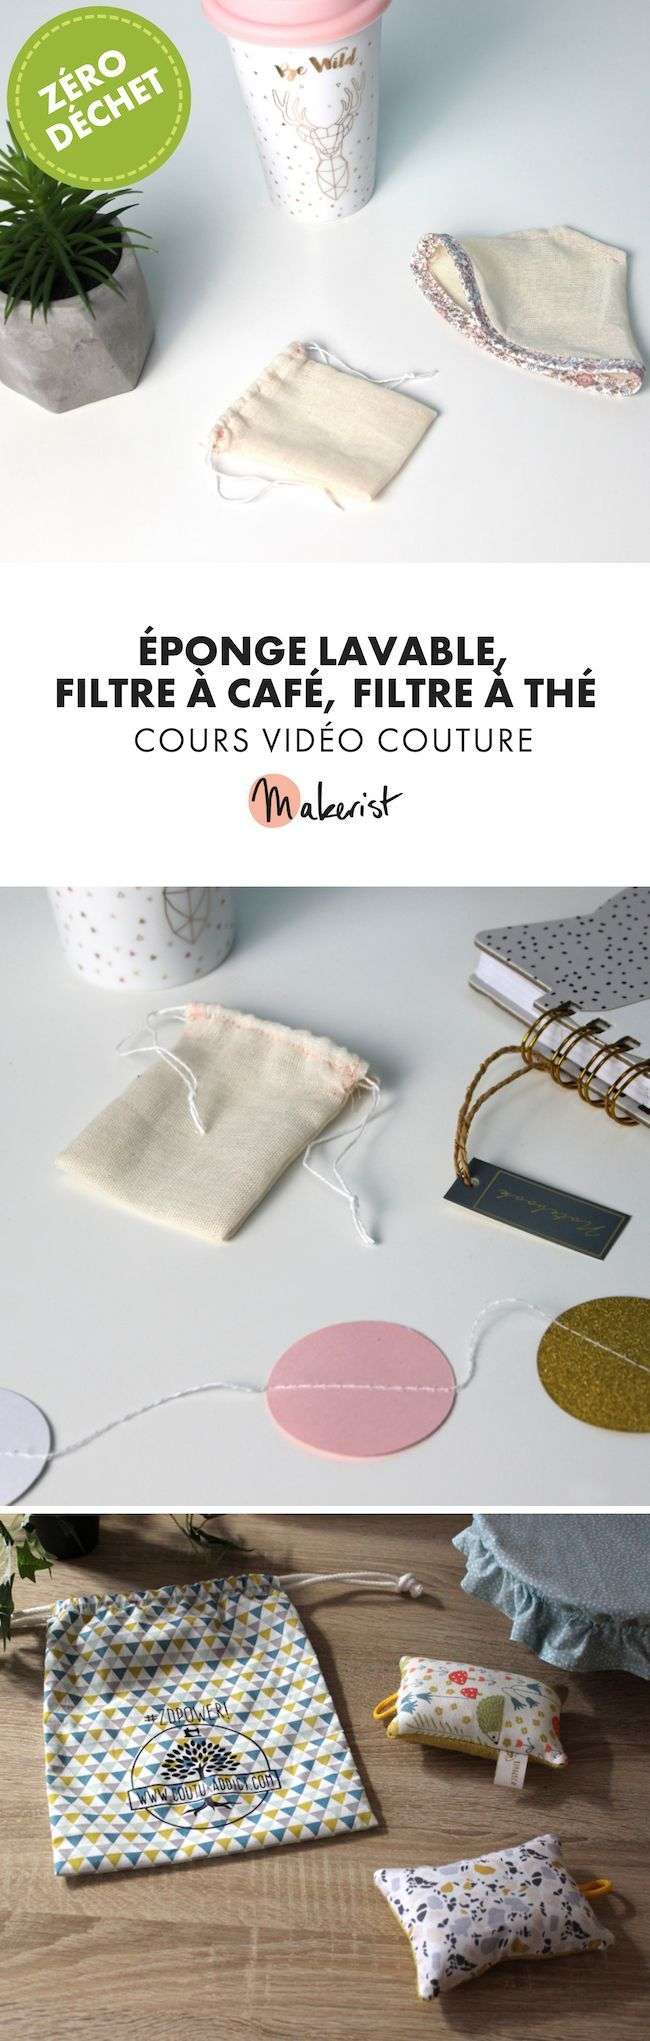 Cours couture zéro déchet - éponge, filtres à café et à thé #couturezerodechet Eponge lavable, filtre à café et filtre à thé - Cours vidéo de couture disponible sur makerist.fr  #couture #filtrecafe #filtrediy #filtrethe #food #wastefree #zerowaste #diy #homediy #plasticfree #zerodechet #ecolo #coutureecolo #cours #coursvideo #coursdecouture #couturezerodechet #reutilisable #passioncouture #inspirationcouture #tutocouture#faitmain #coudrerendheureux #coudreavecmakerist #couture #cout #couturezerodechet